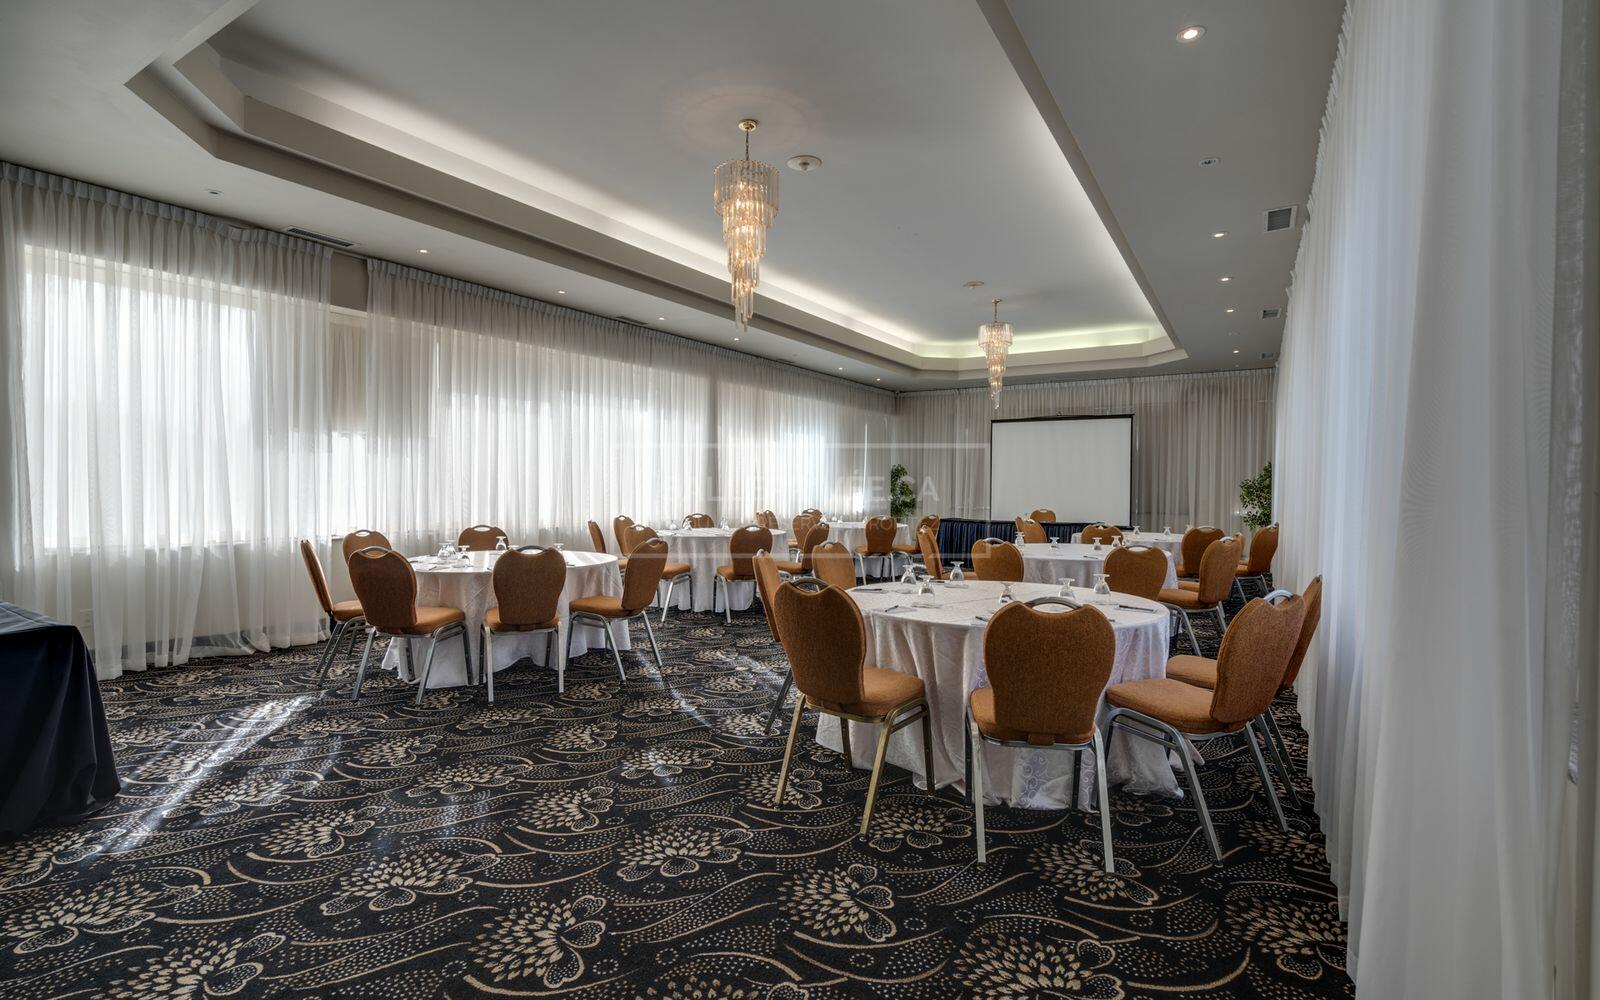 Meeting space set with banquet rounds and chairs.